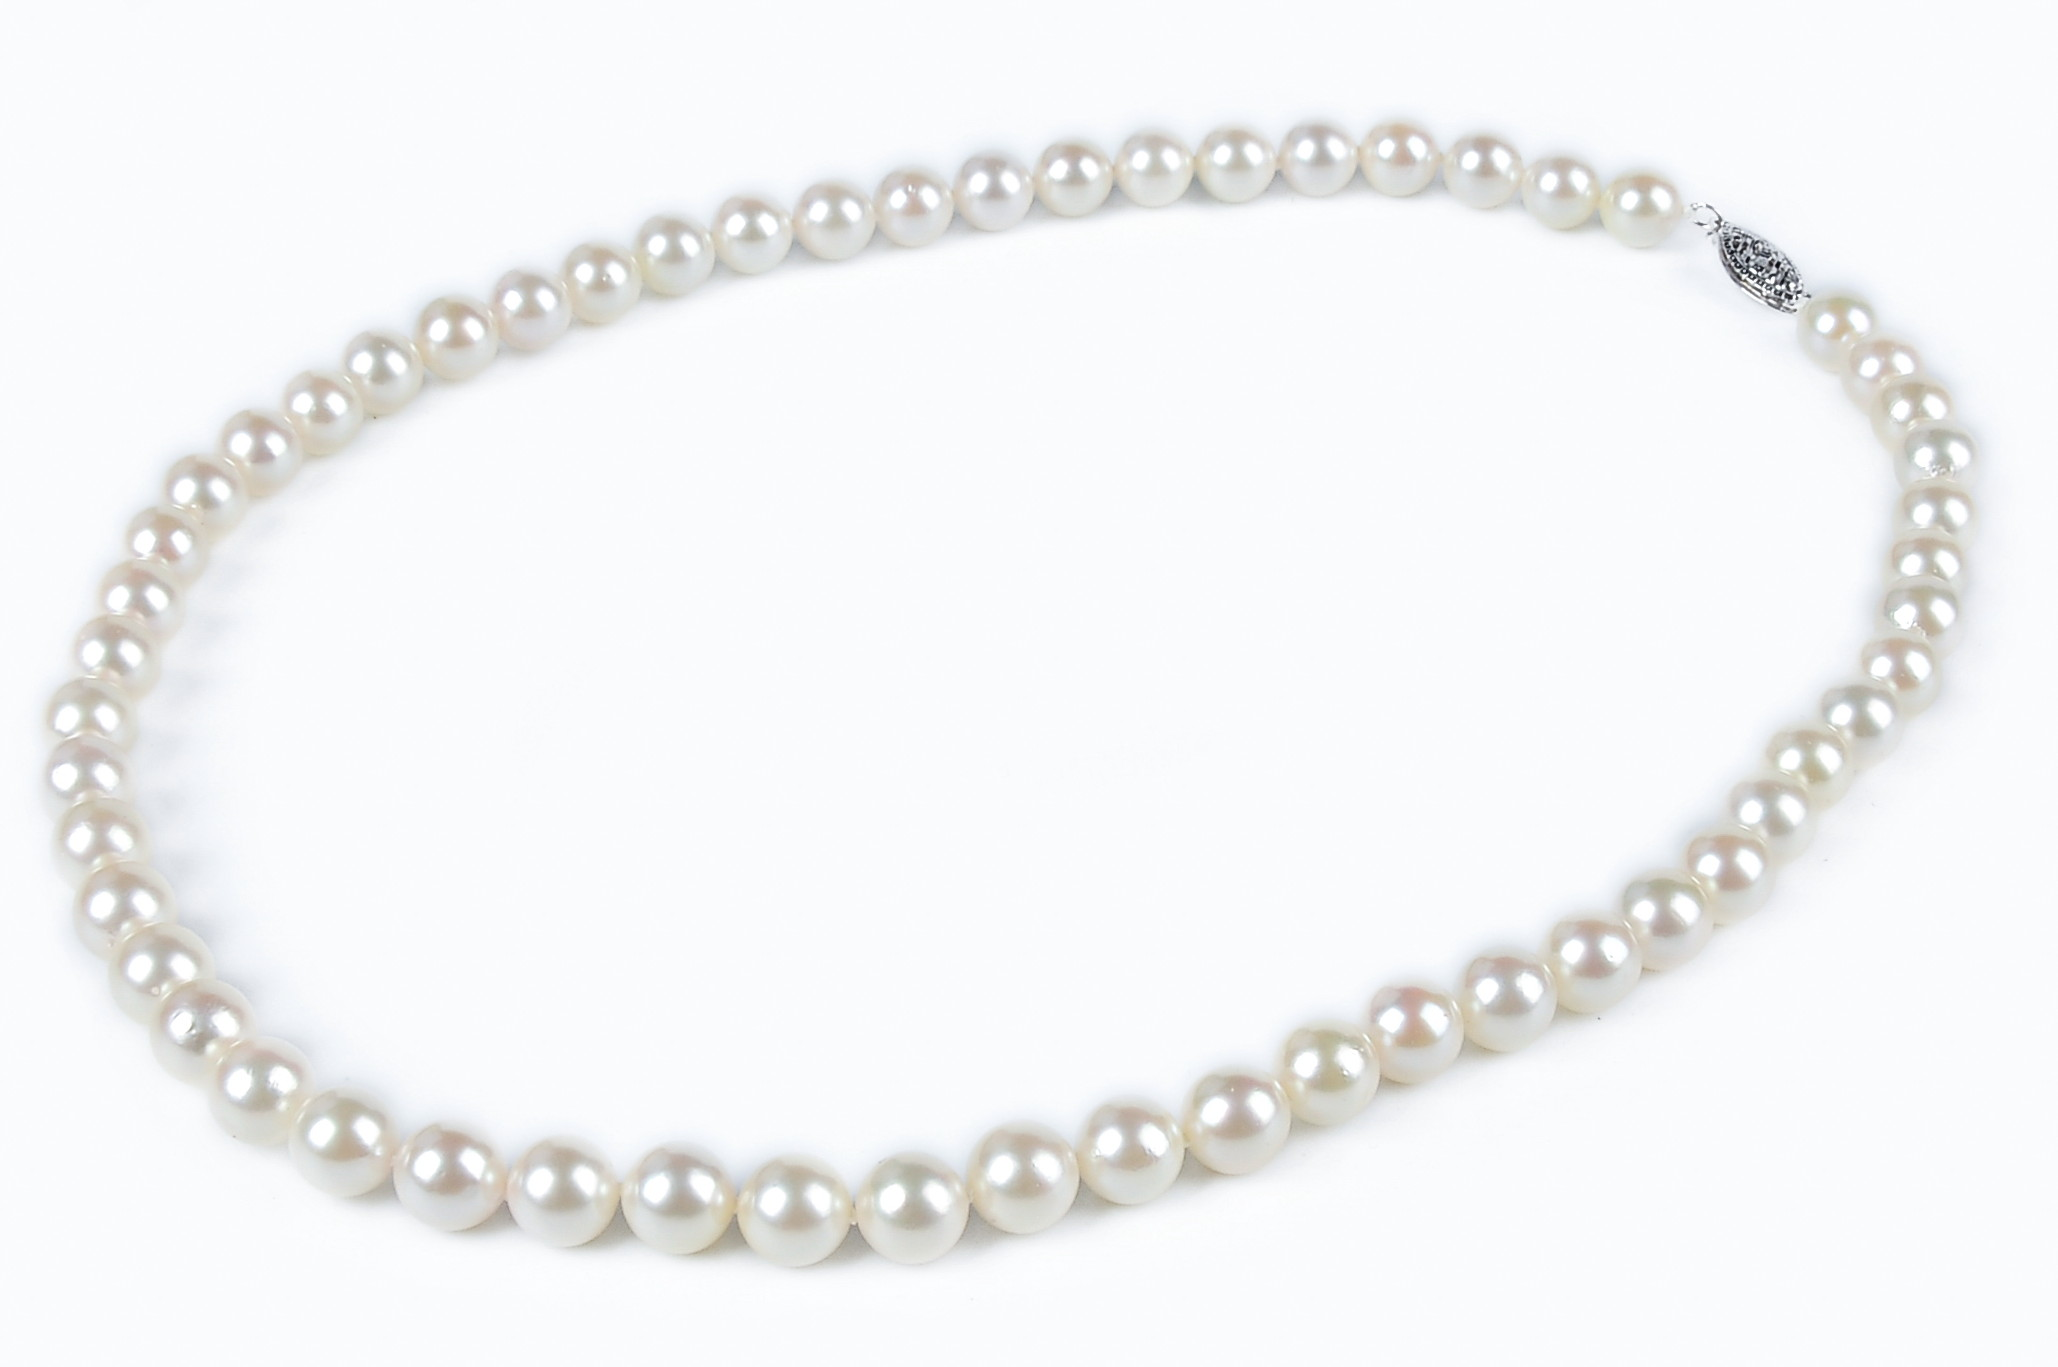 7mm AAA White Saltwater Akoya Cultured Pearl Strand Necklace - 14K Gold Filigree Fish Clasp Certified SKU#: nk271